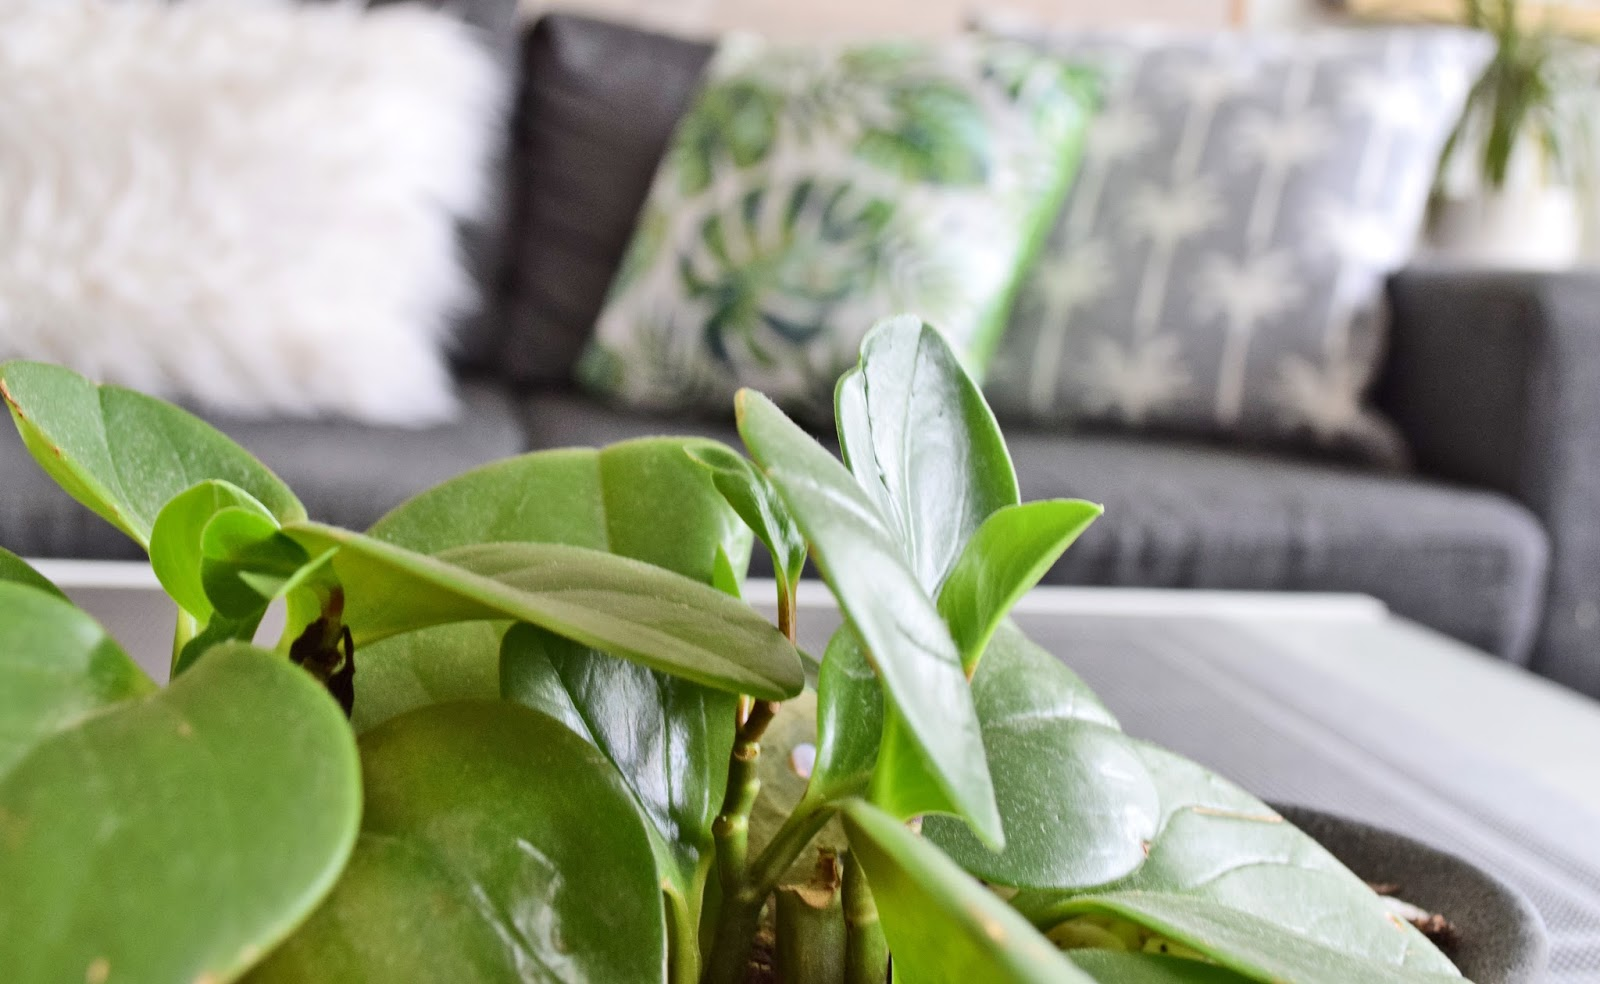 Plants in home decor